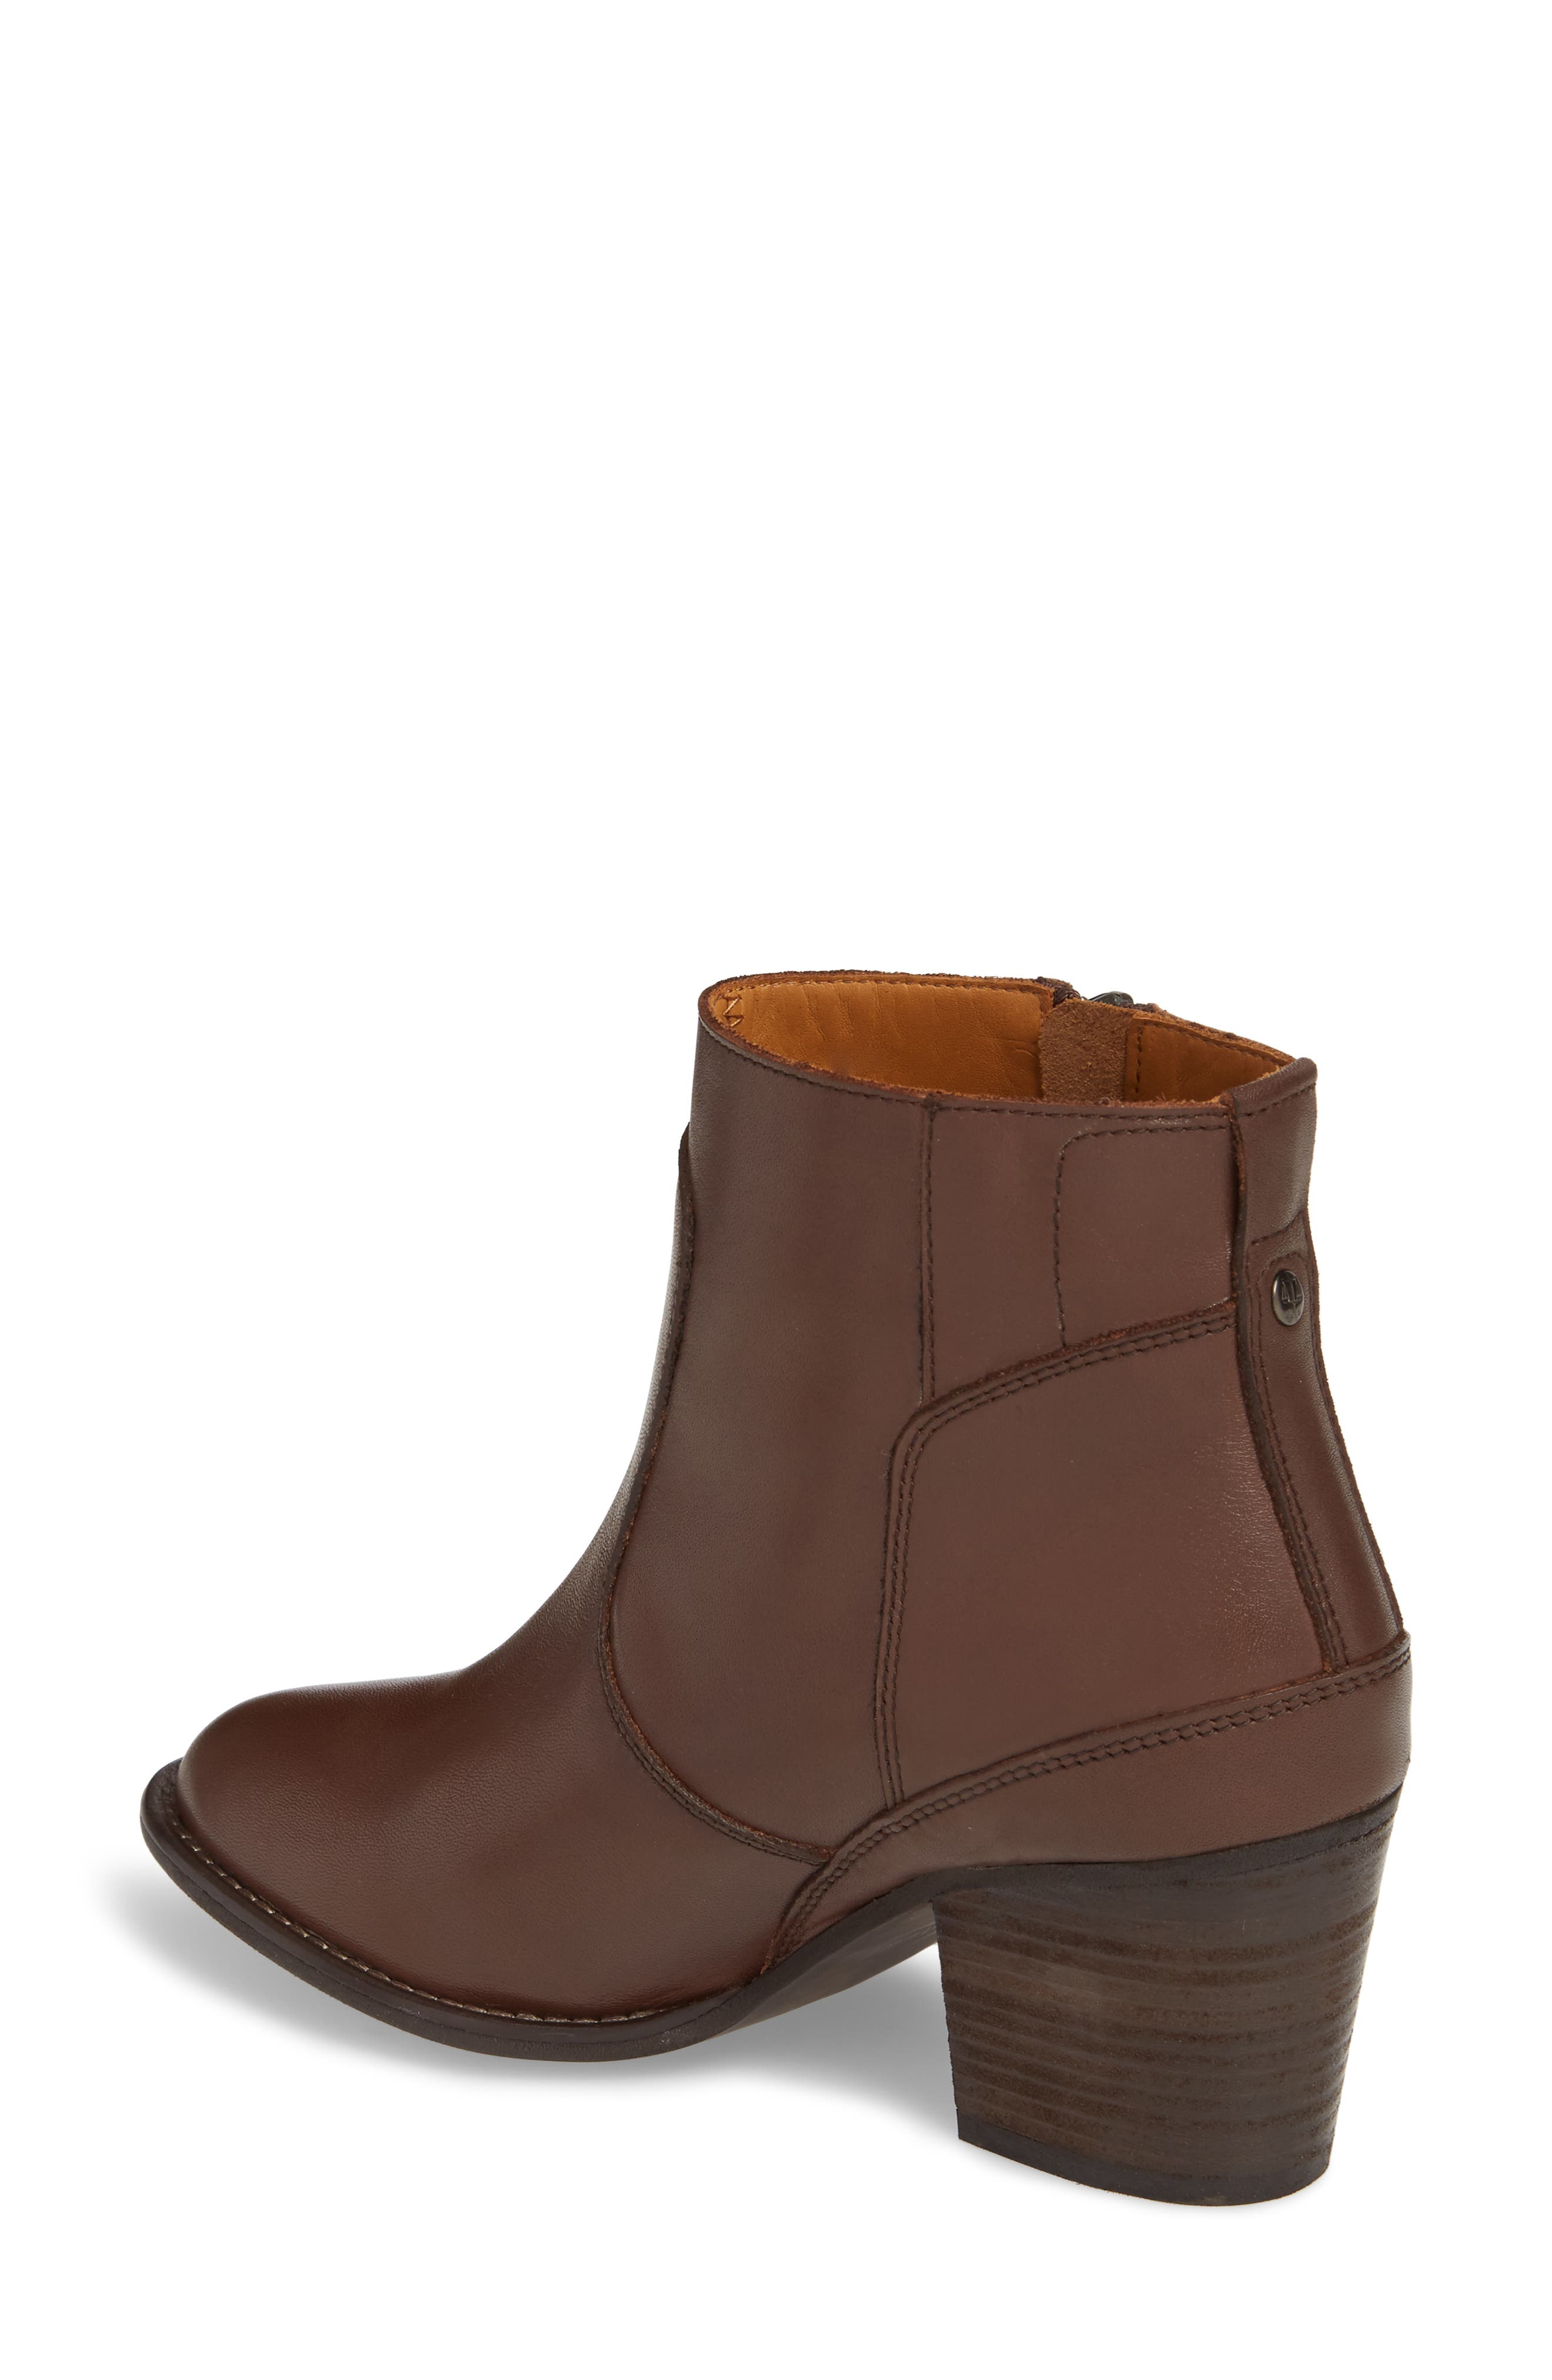 Refined Water Resistant Zip Bootie,                             Alternate thumbnail 2, color,                             Bitter Chocolate Leather